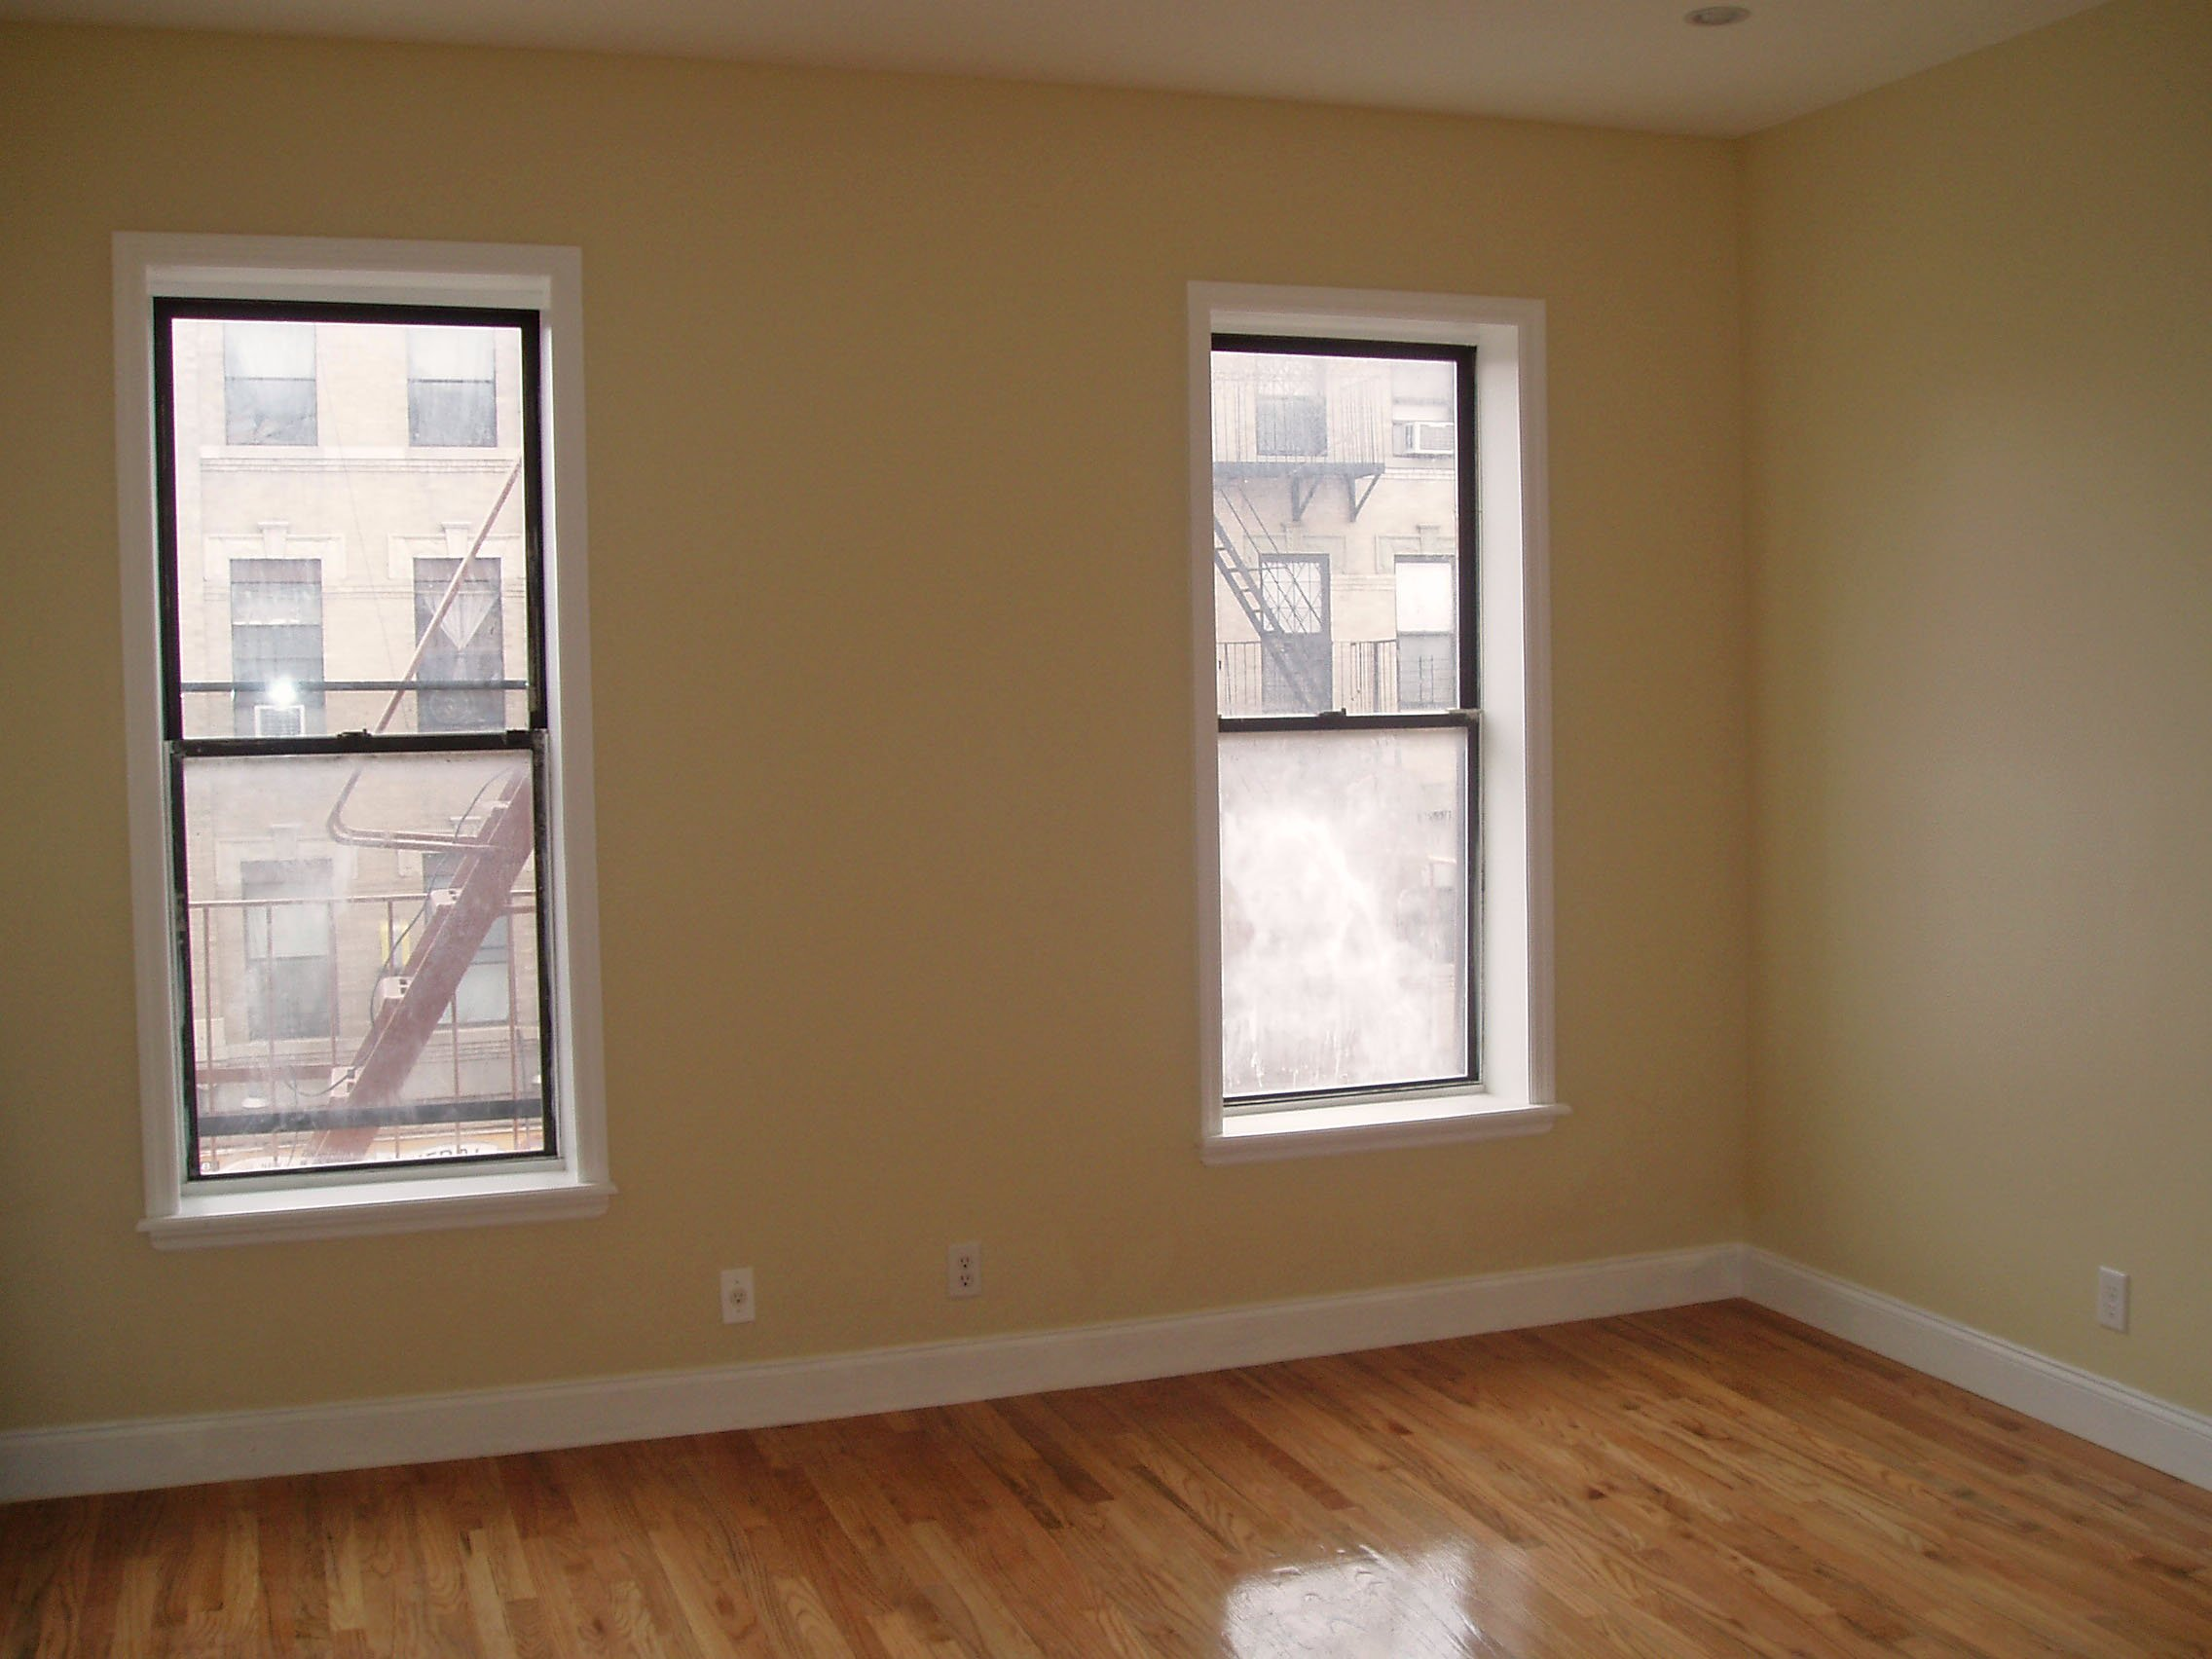 2 Bedroom Apartments For Rent In Brooklyn New York 2